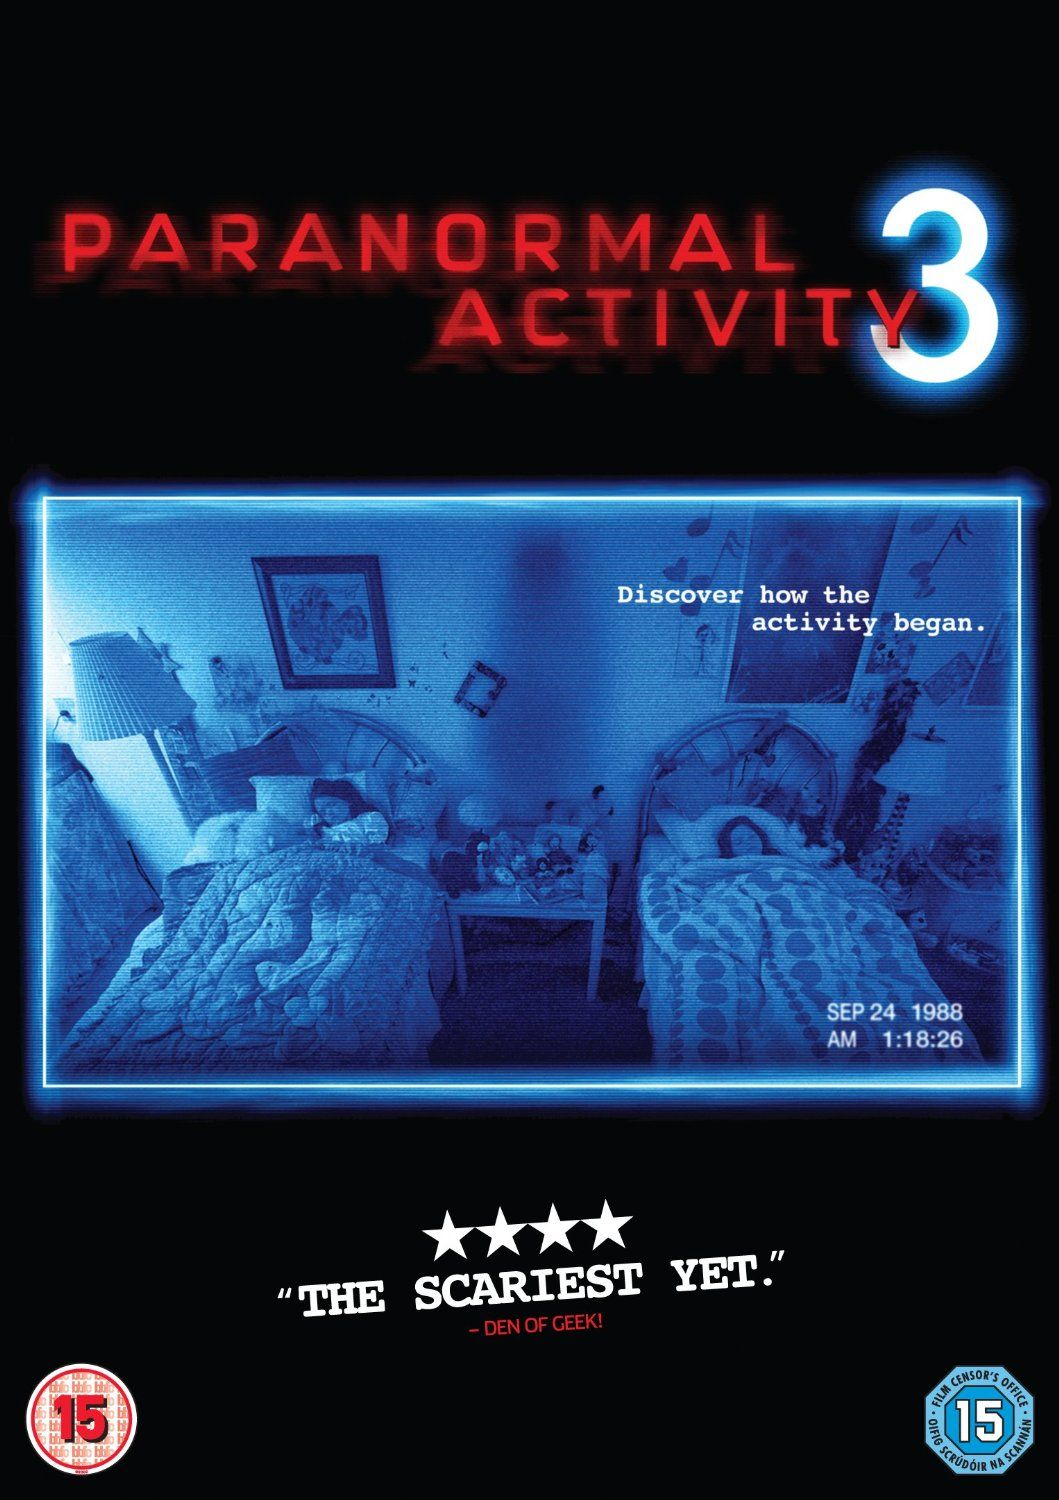 NEW Katie Featherston Paranormal Activity Movie POSTER 11 x 17 Micah Sloat A